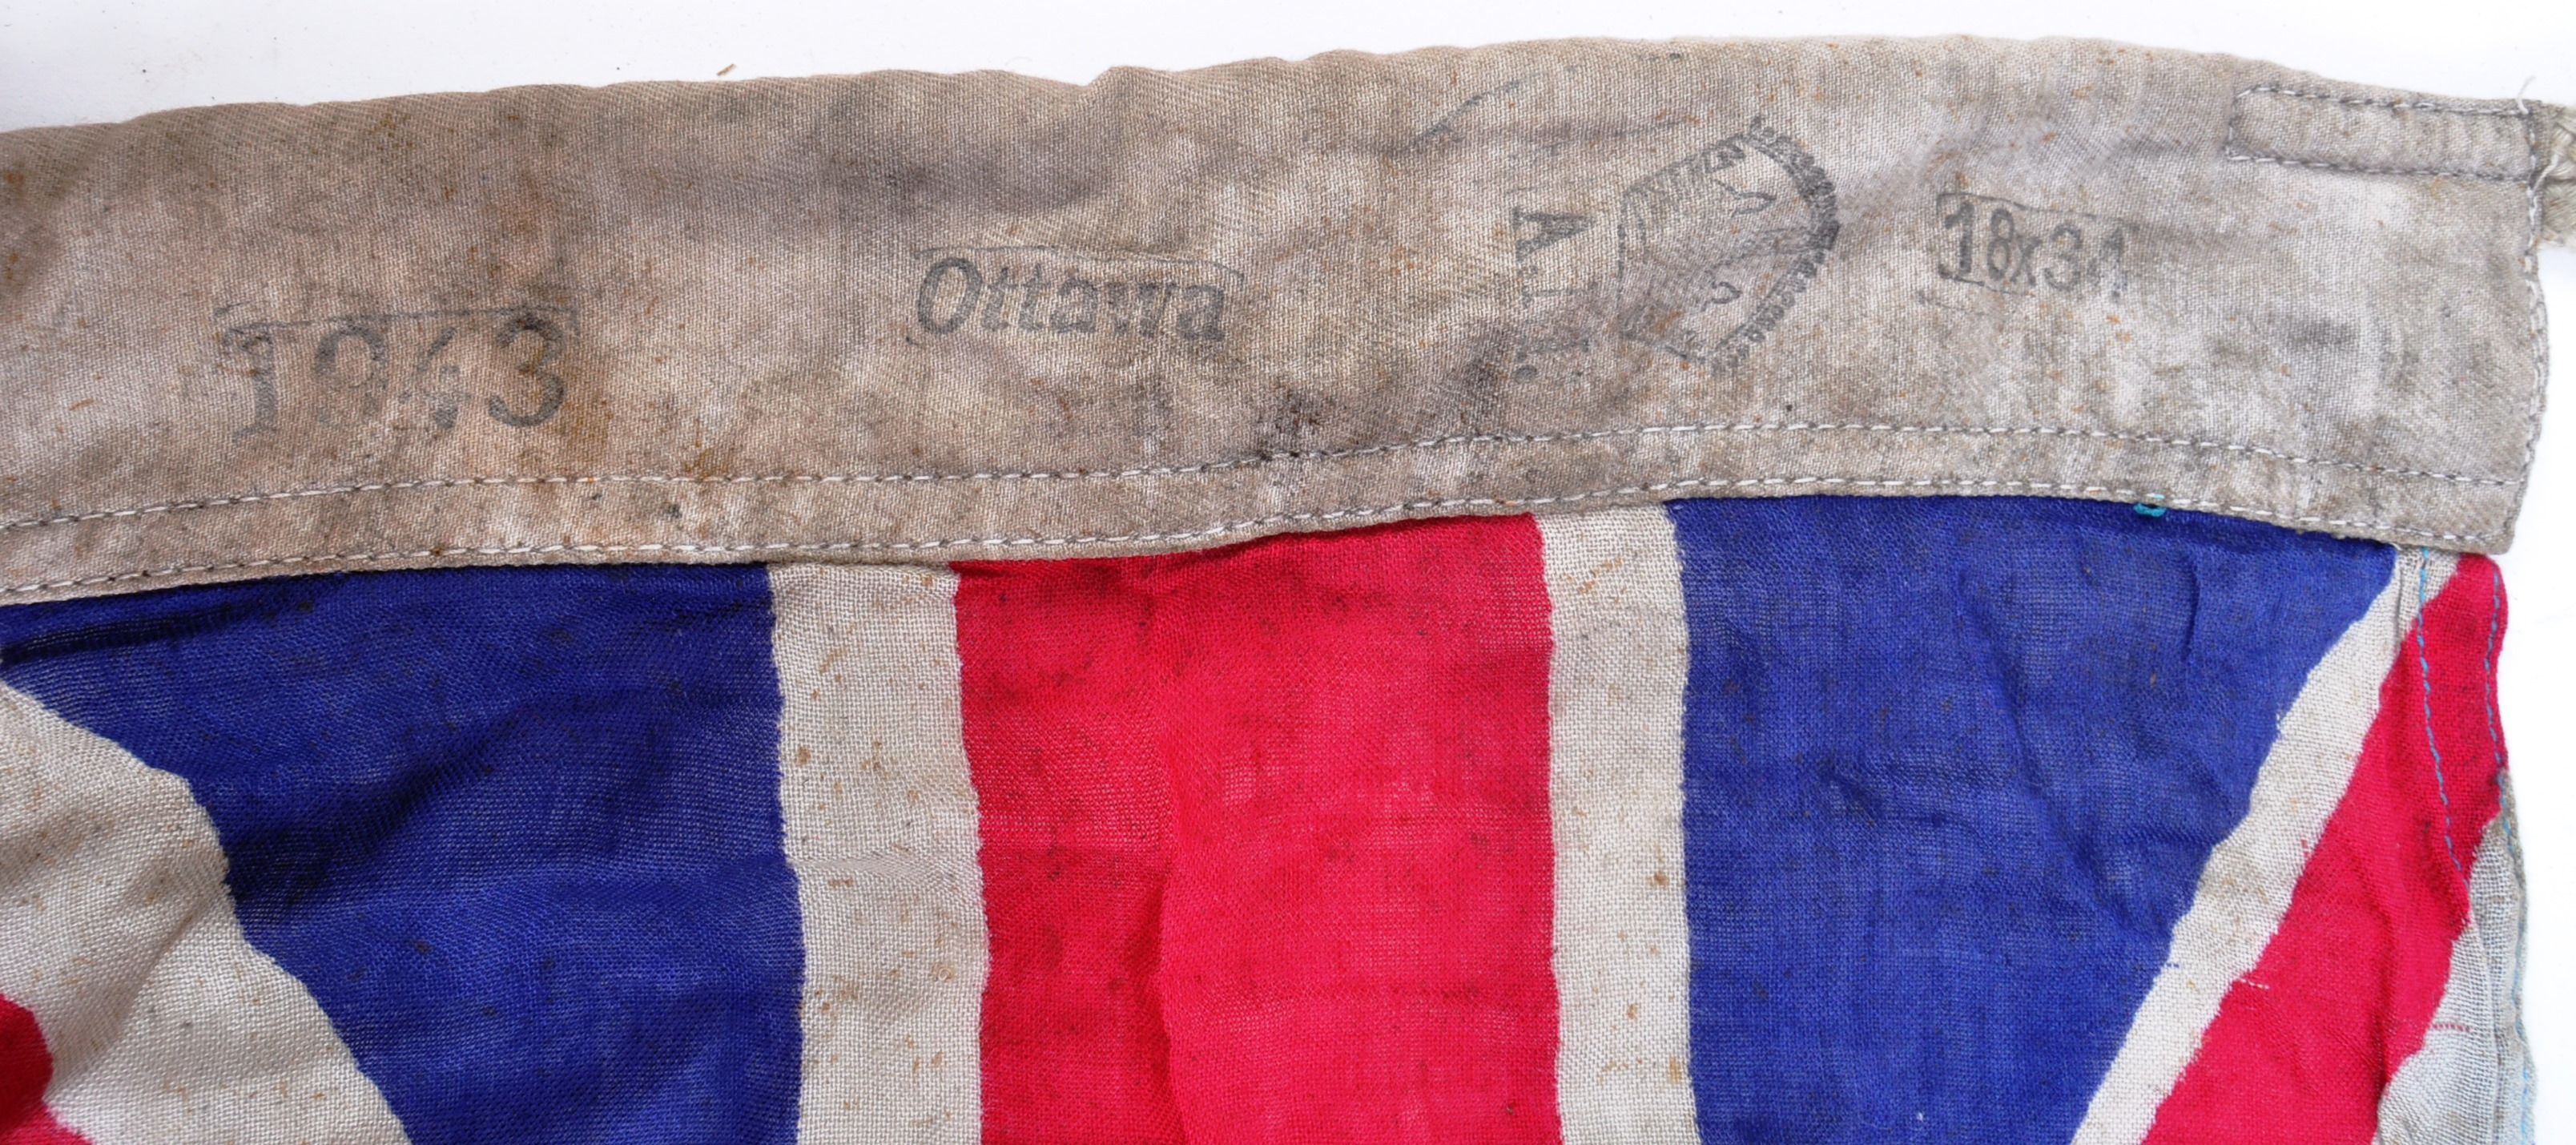 WWII SECOND WORLD WAR TYPE RCAF CANADIAN AIR FORCE BASE FLAG - Image 4 of 7